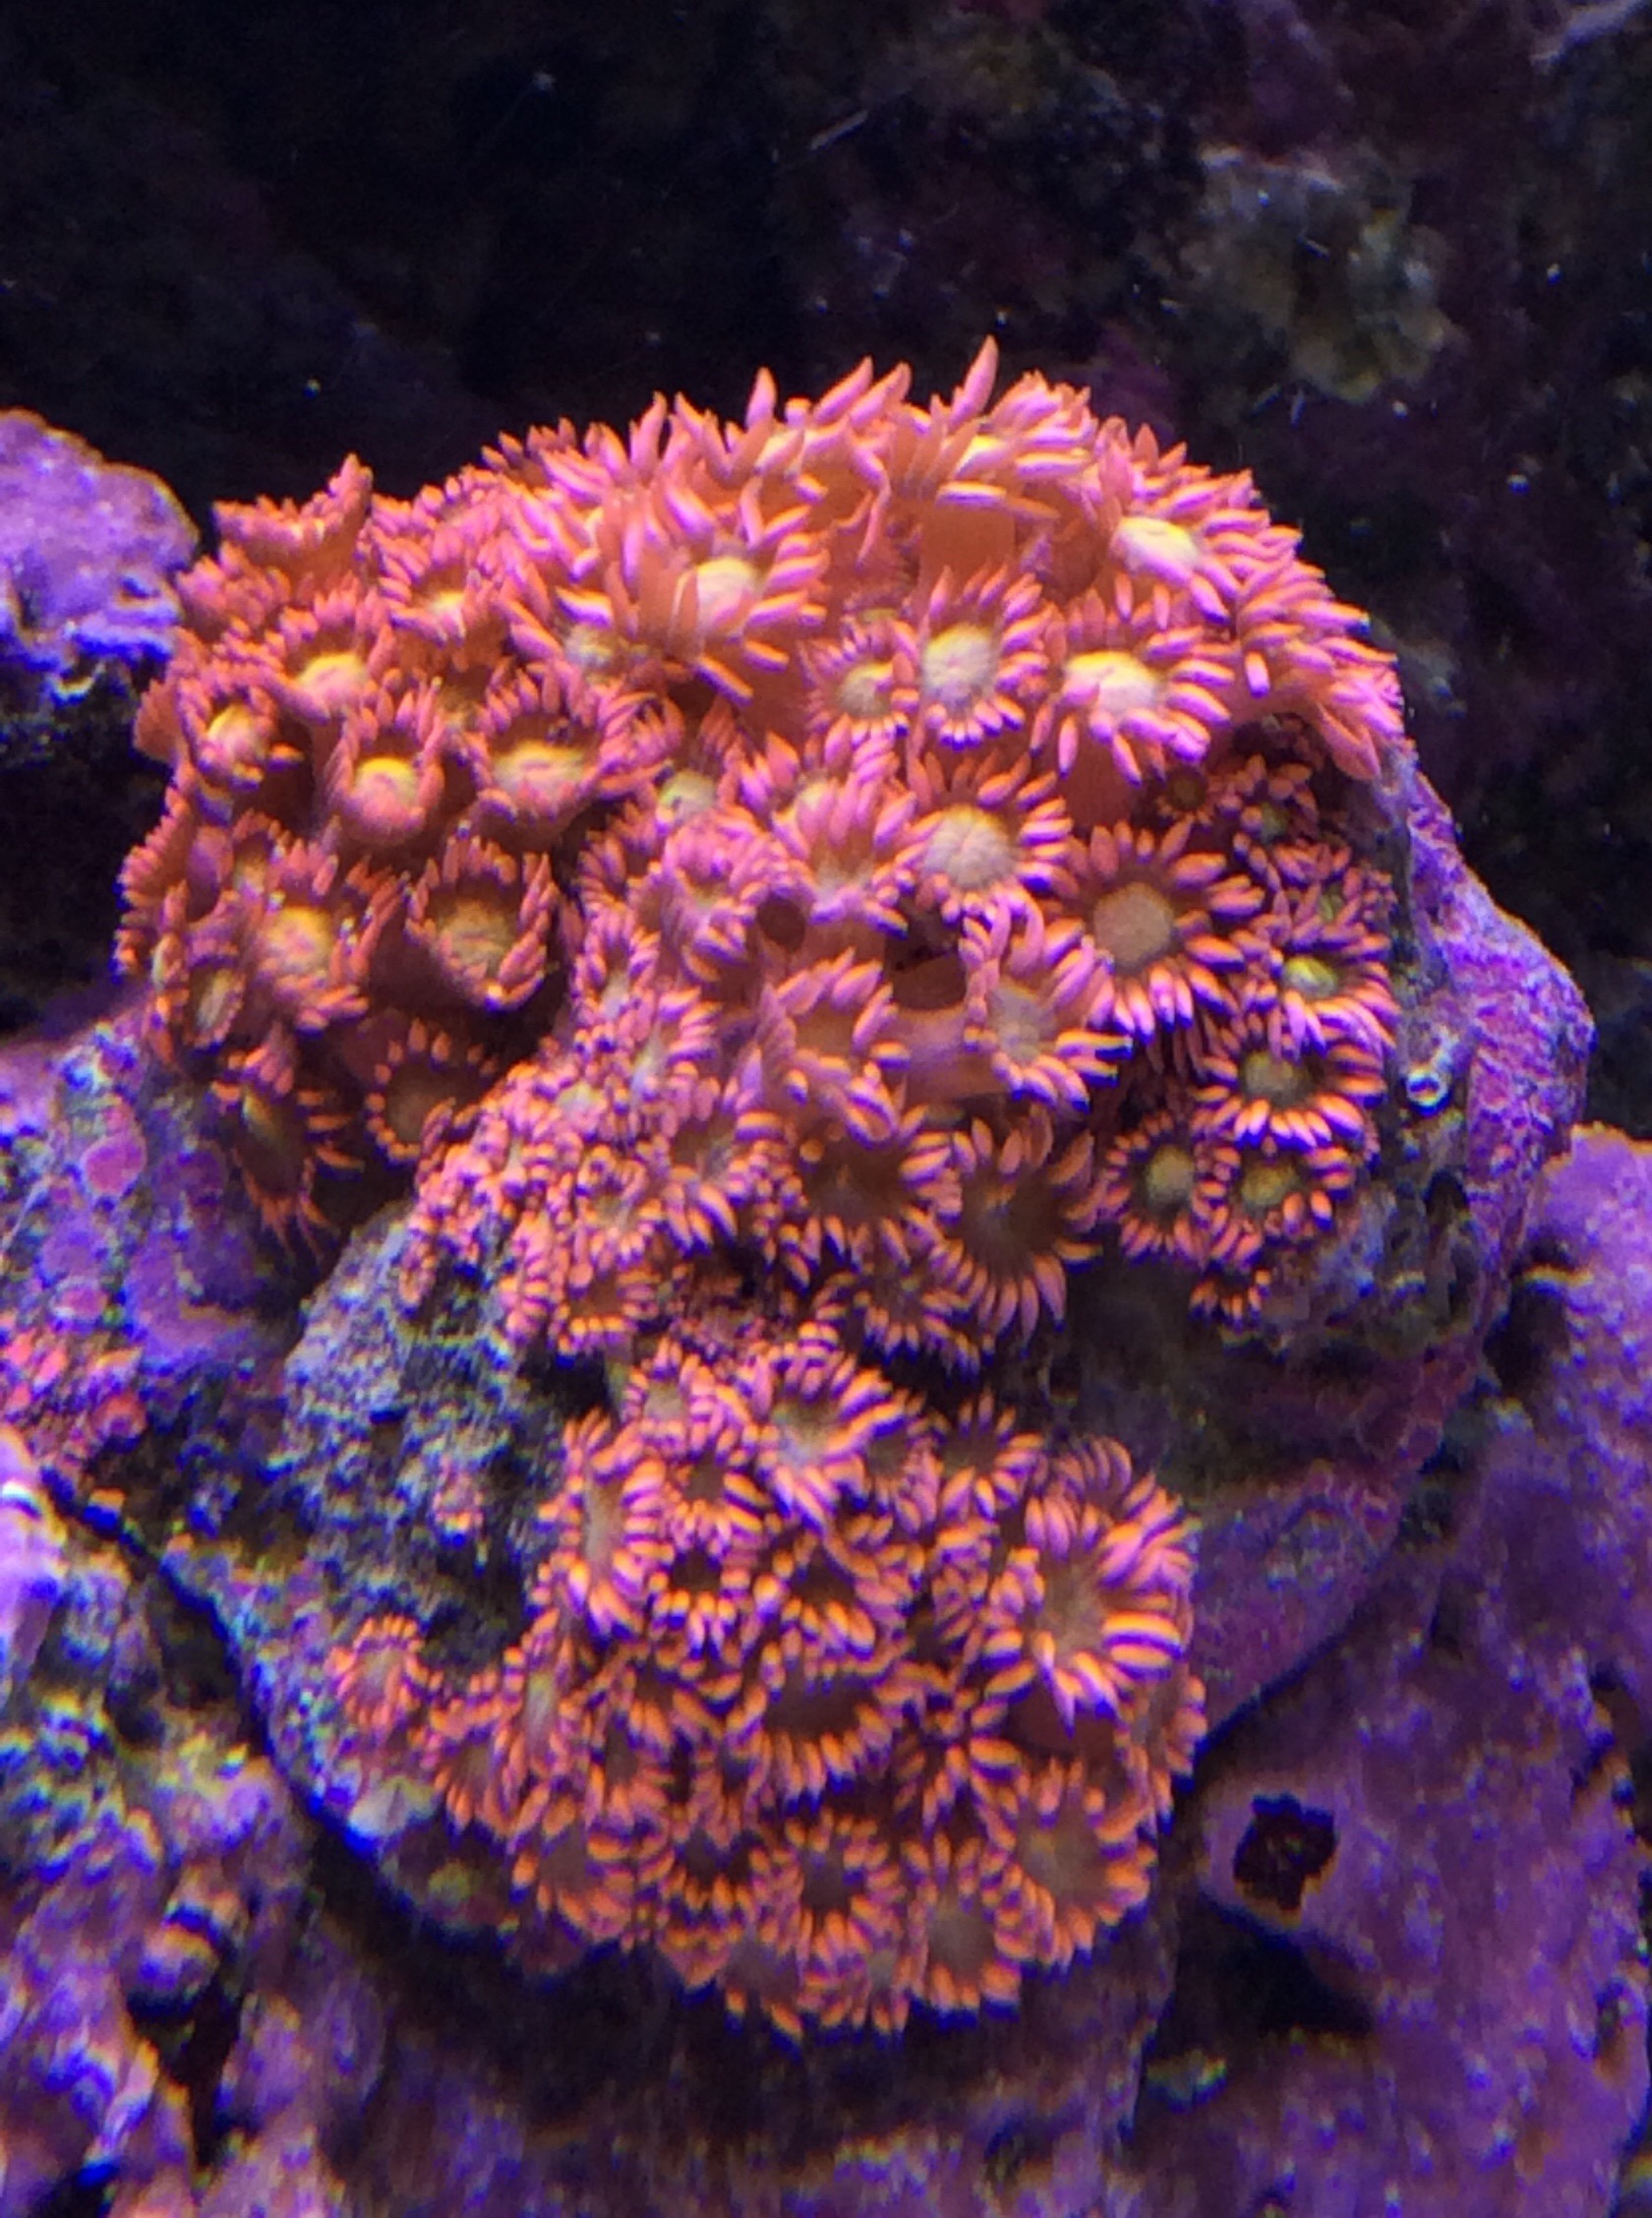 Aquaticlog stock by oliviervdl added flower pot coral pink 4 0 flower pot coral pink goniopora sp mightylinksfo Choice Image